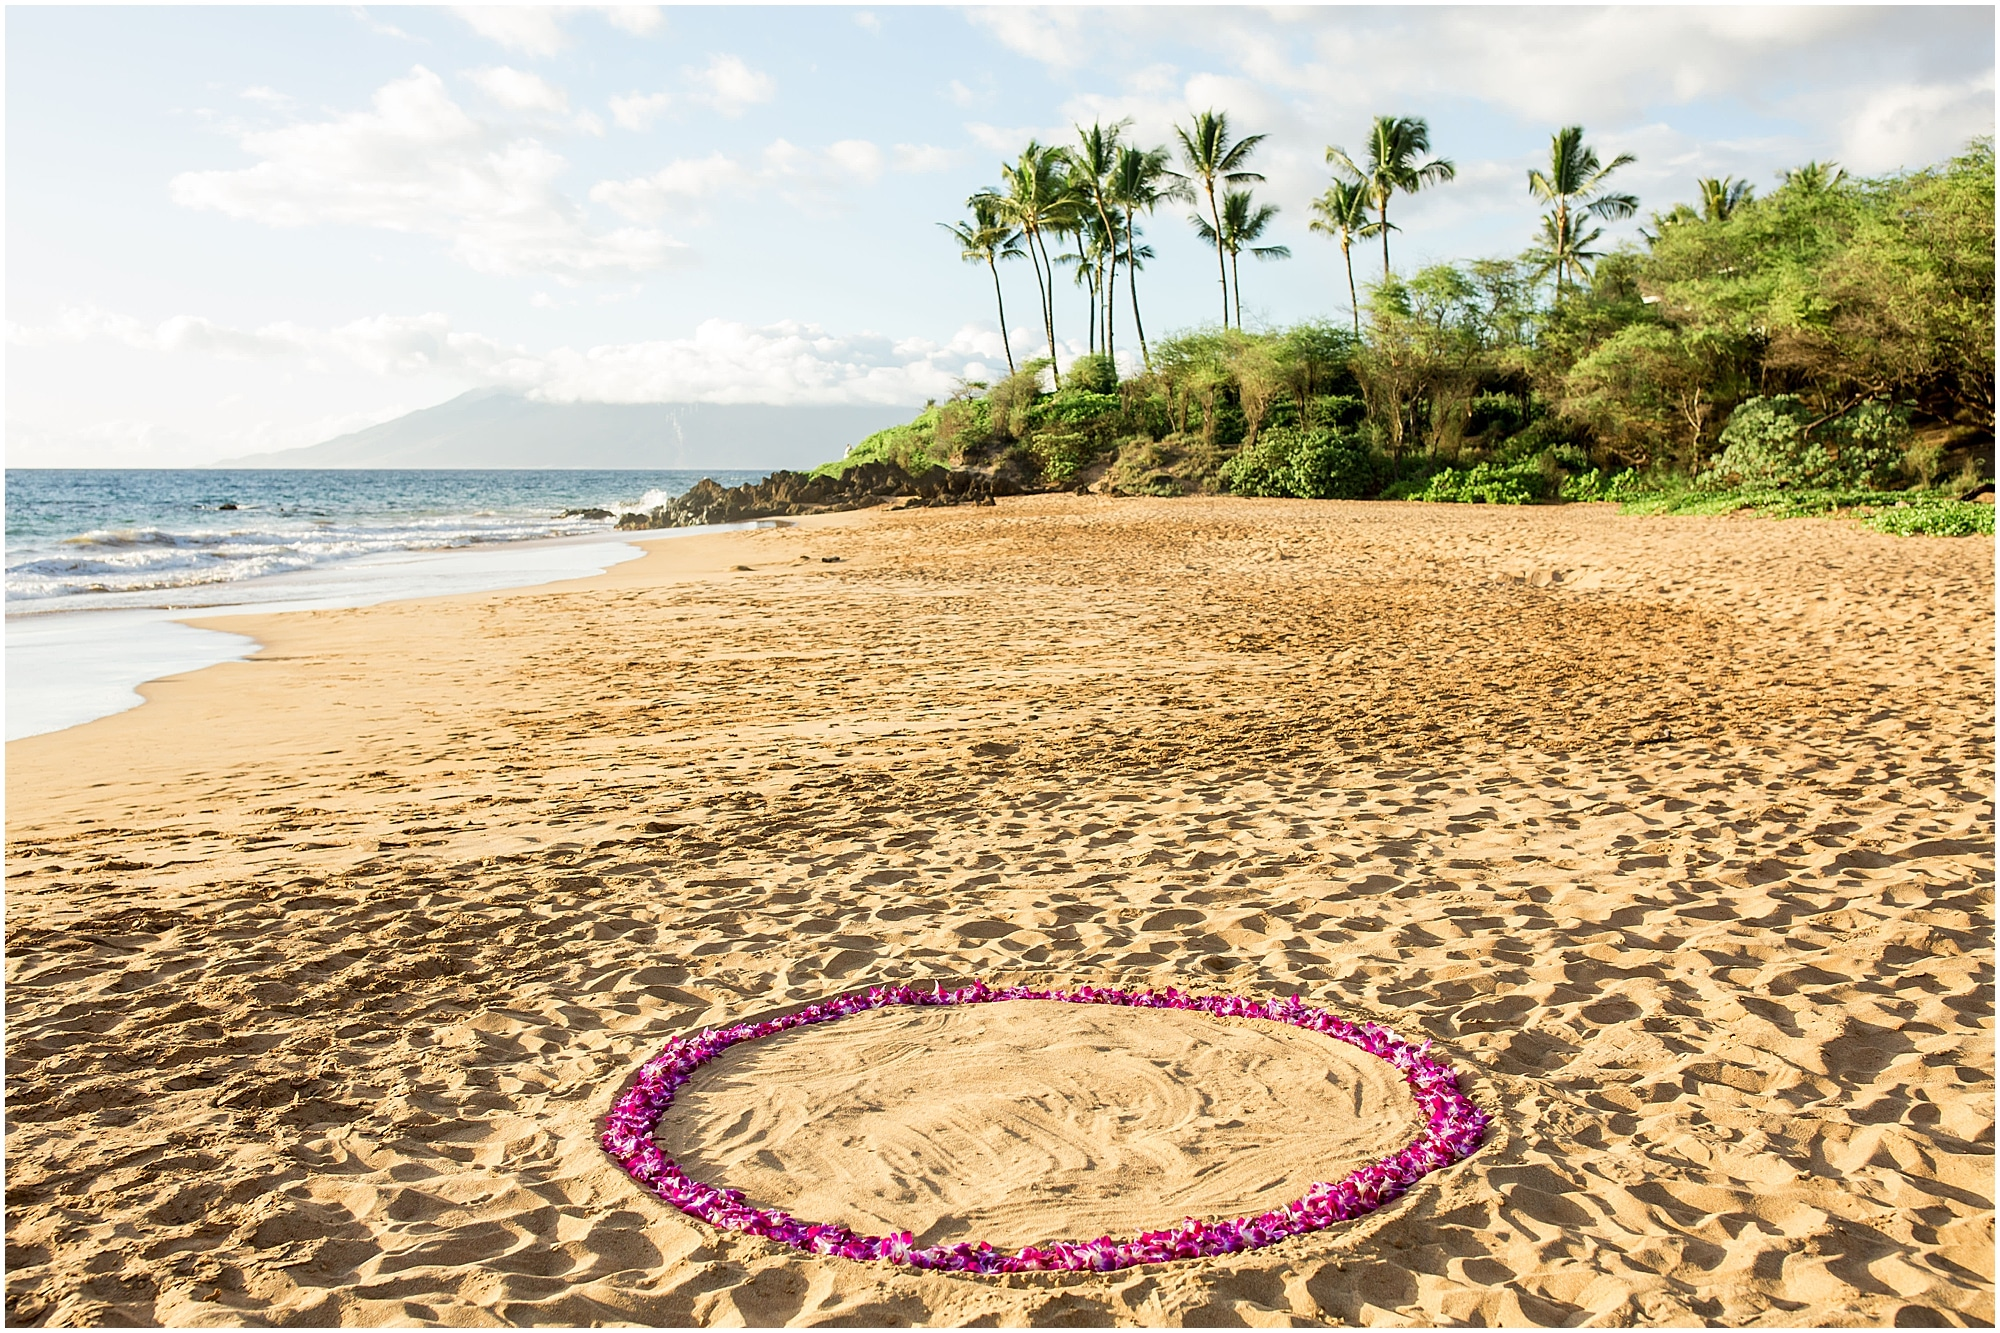 Proposal ideas | Proposal pictures | Beach proposal | Beach proposal ideas | Proposal | Hawaii proposal | Maui Proposal | Maui proposal ideas | Hawaii Engagement Photographer | Maui Engagement Photographer | Engaged on Maui